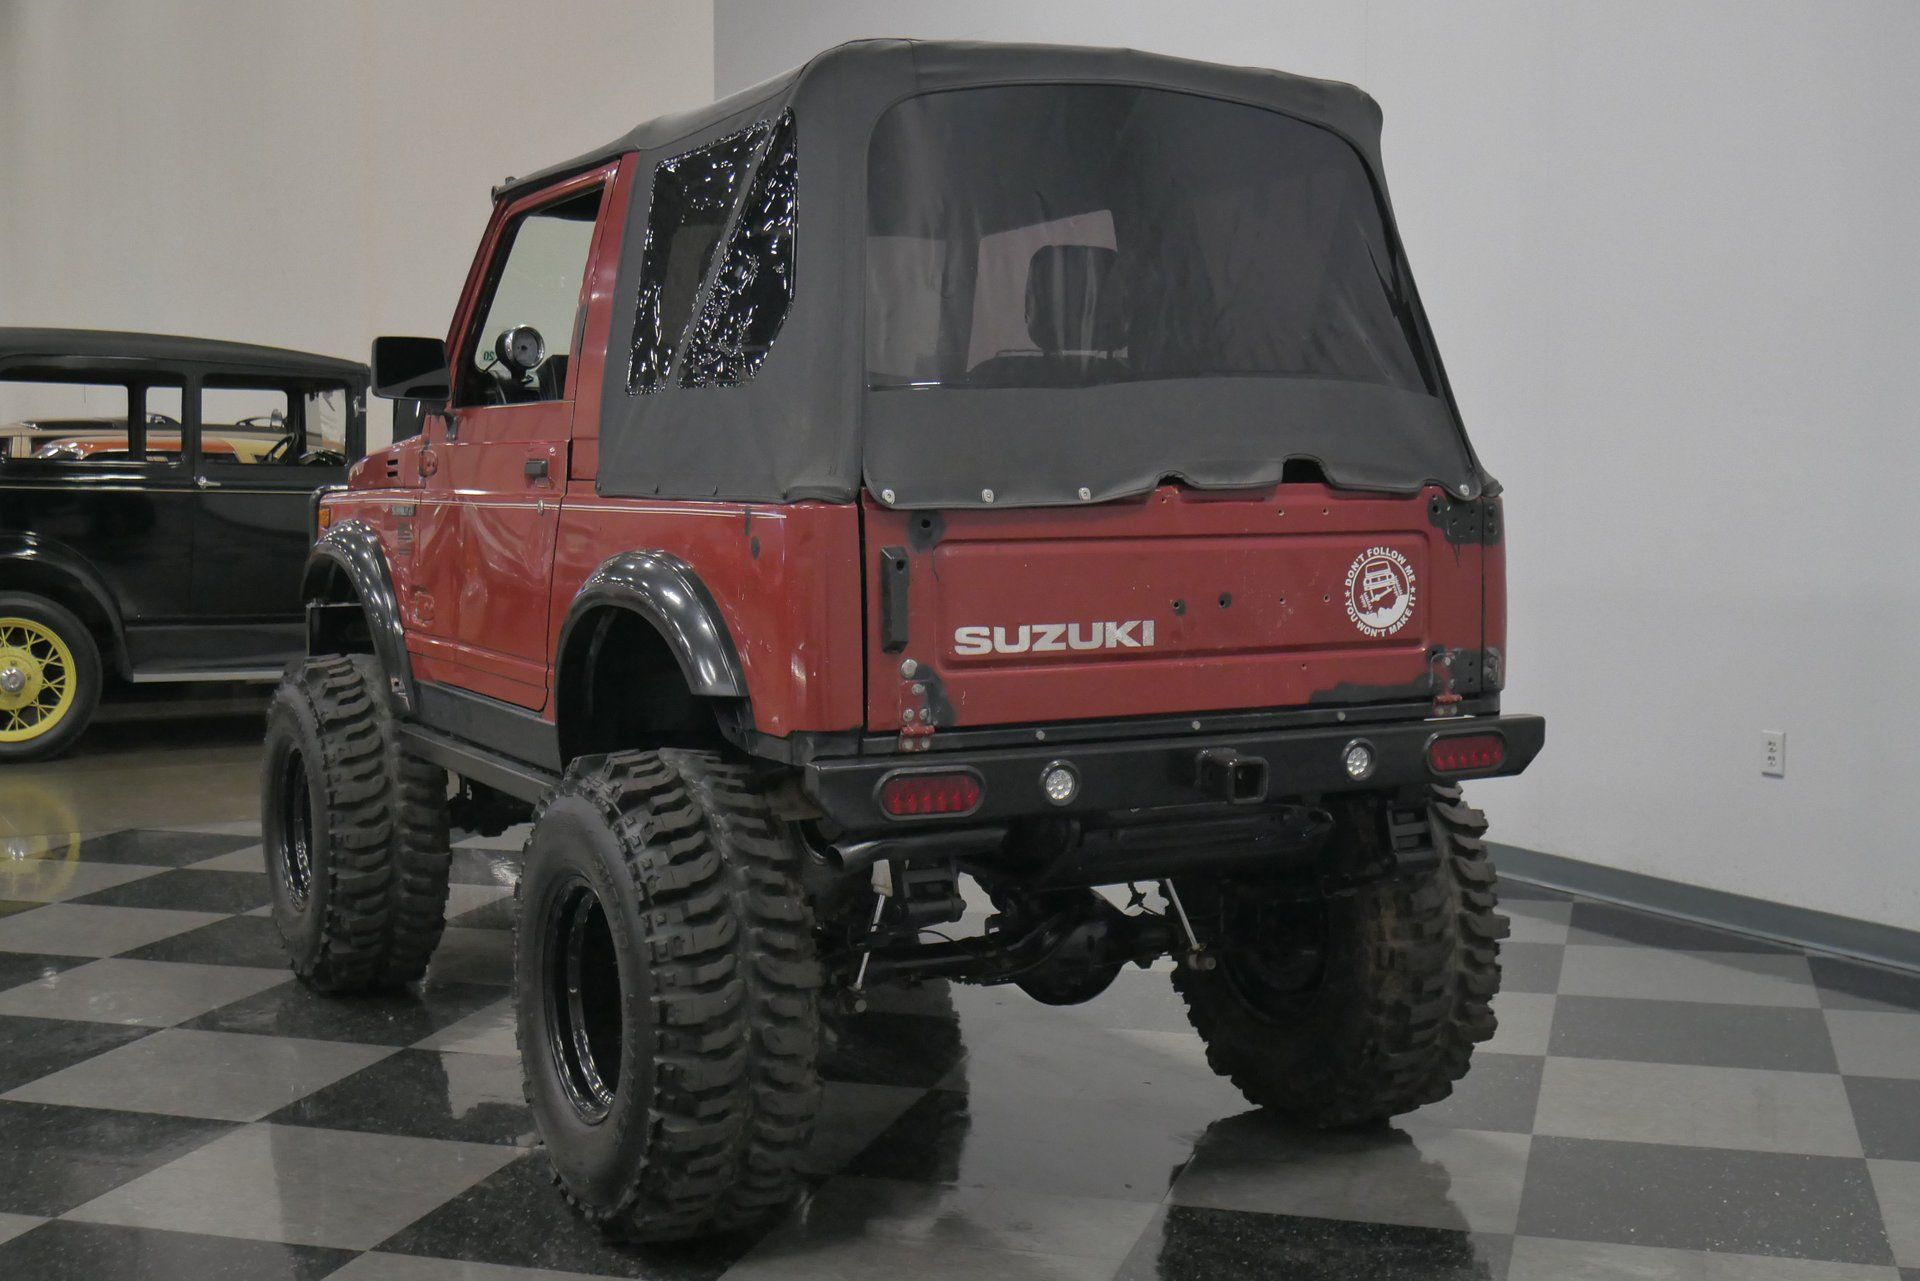 Conquer Trails With This 1988 Suzuki Samurai